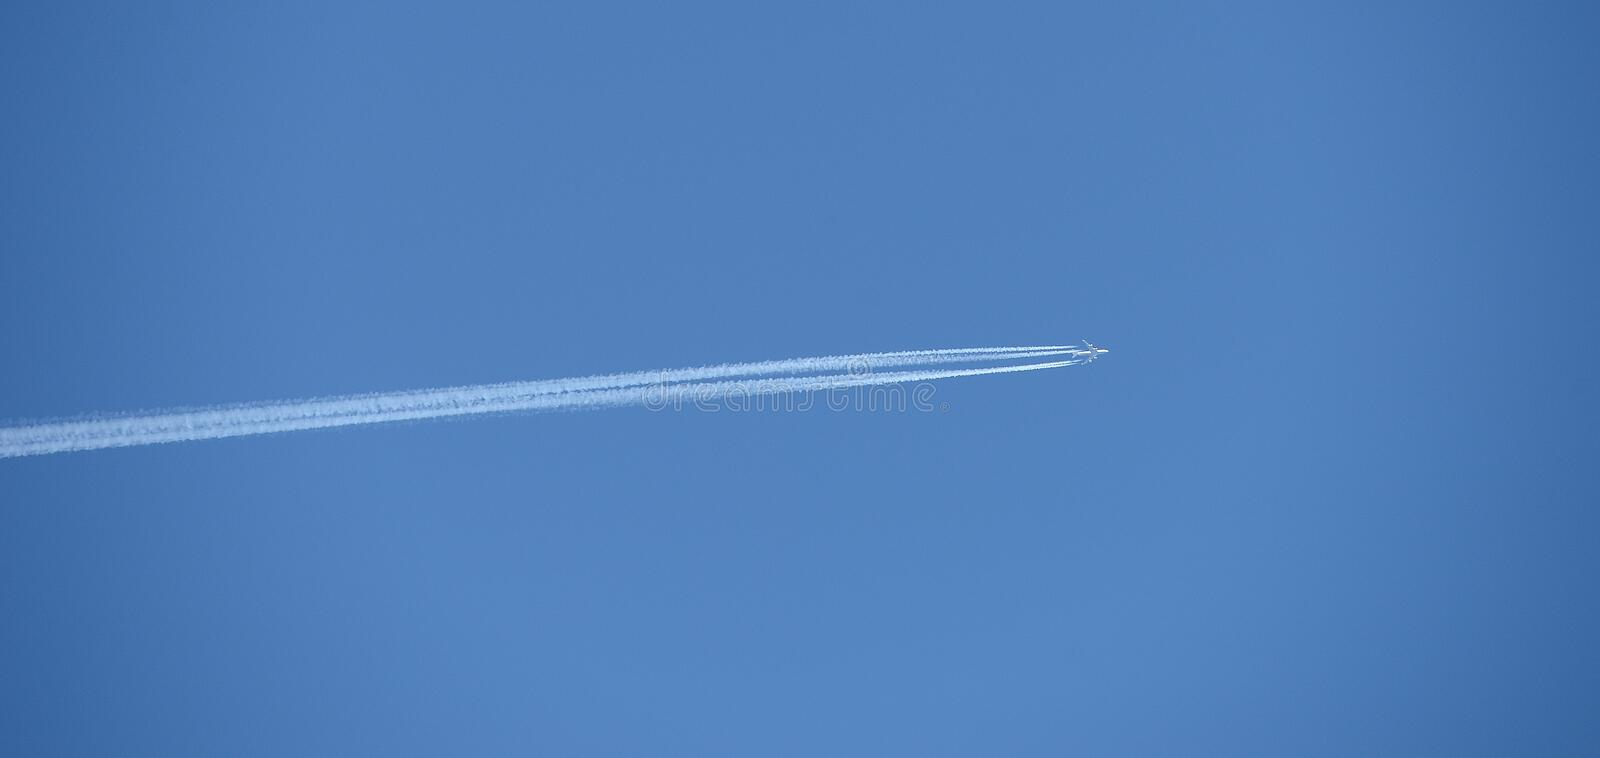 Blue Sky With Vapor Trail Stock Image